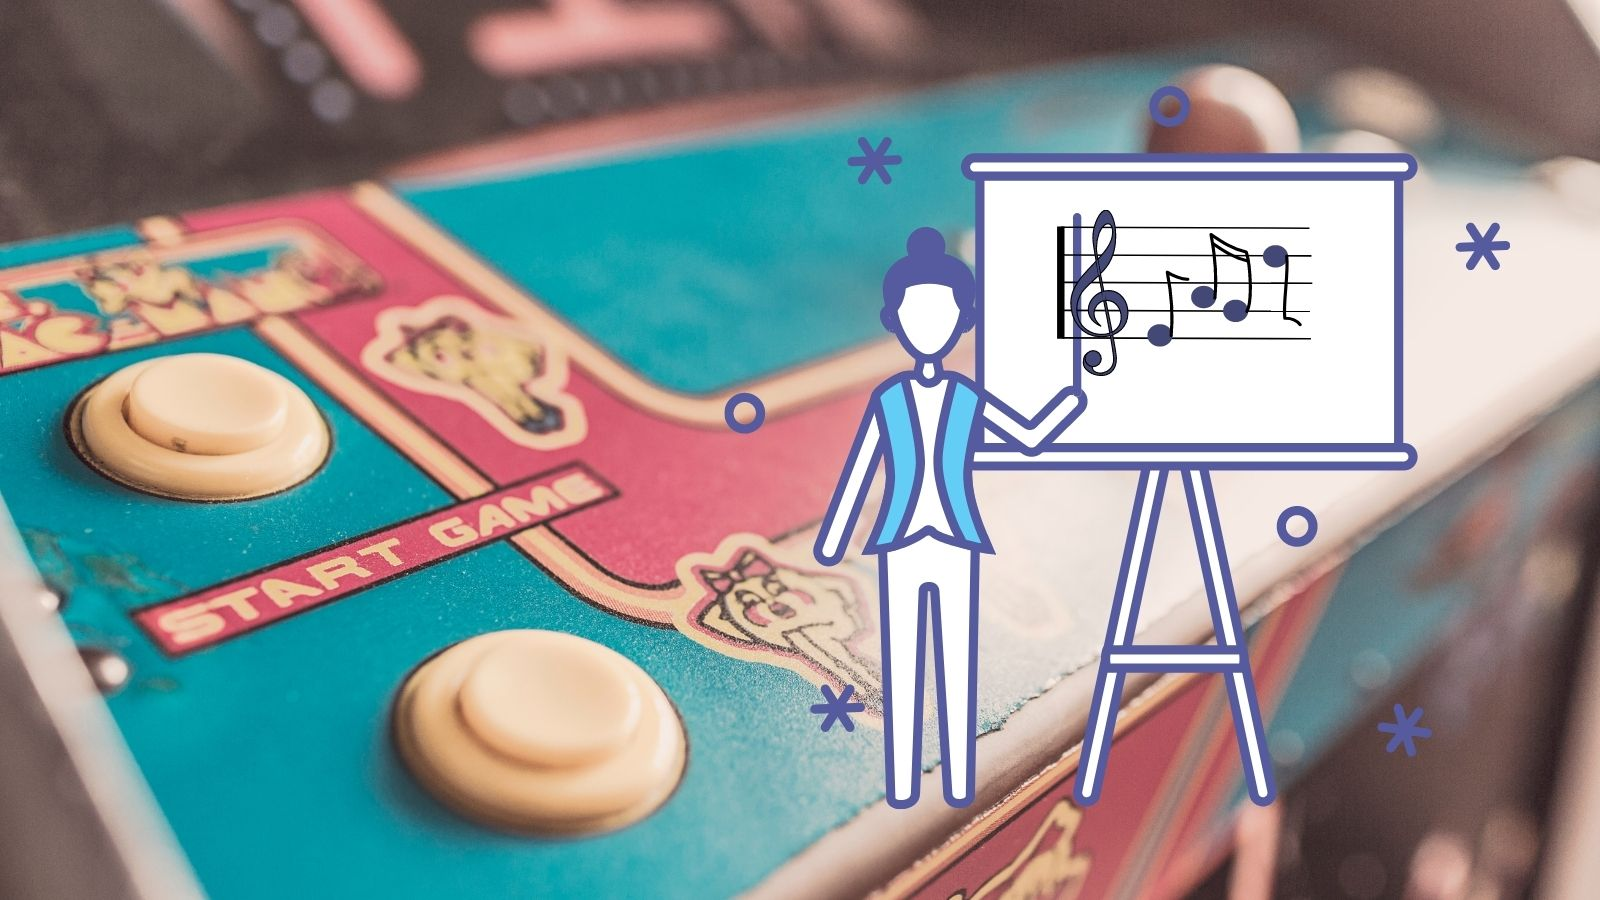 Composite of an arcade game machine and a music teacher